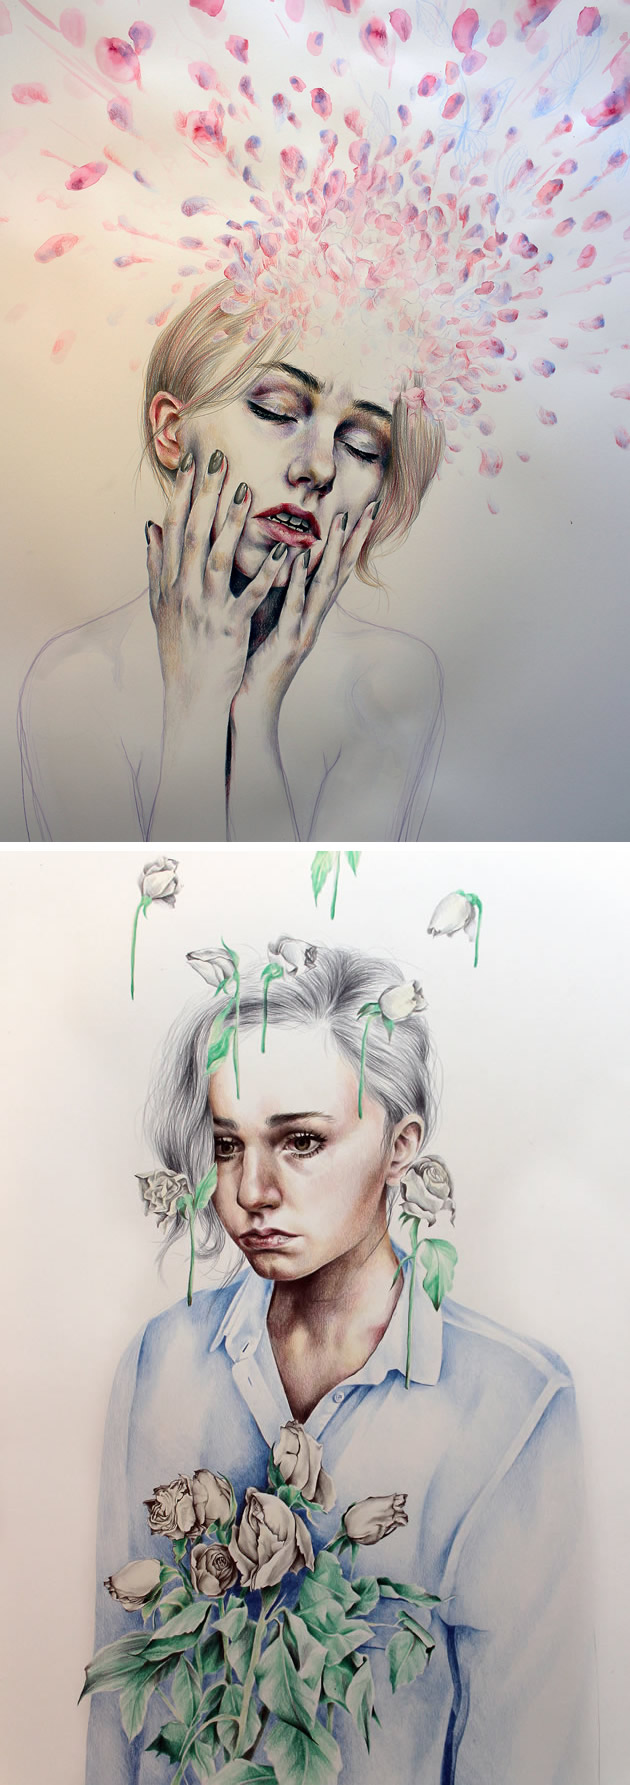 18 year old artist Kate Powell